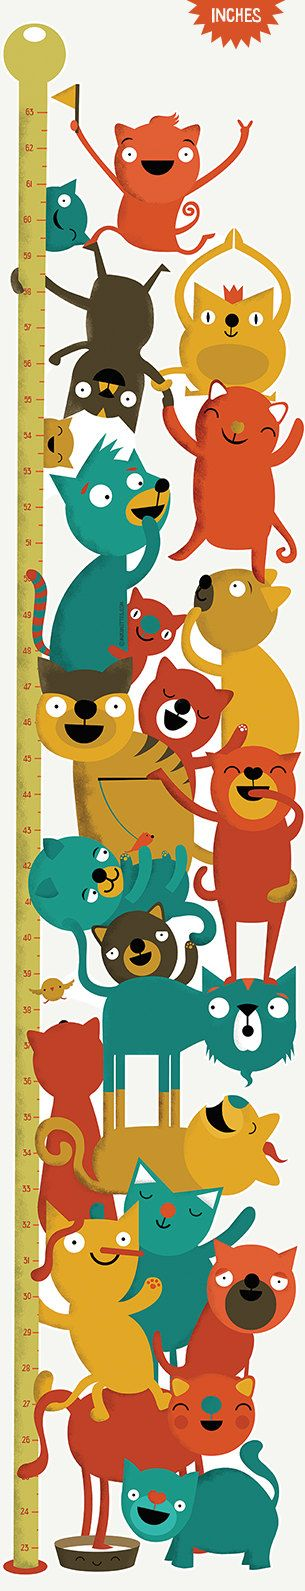 Wall Sticker Growth Chart Inch by mikimottes on Etsy, $49.95    #cats #animals #cute